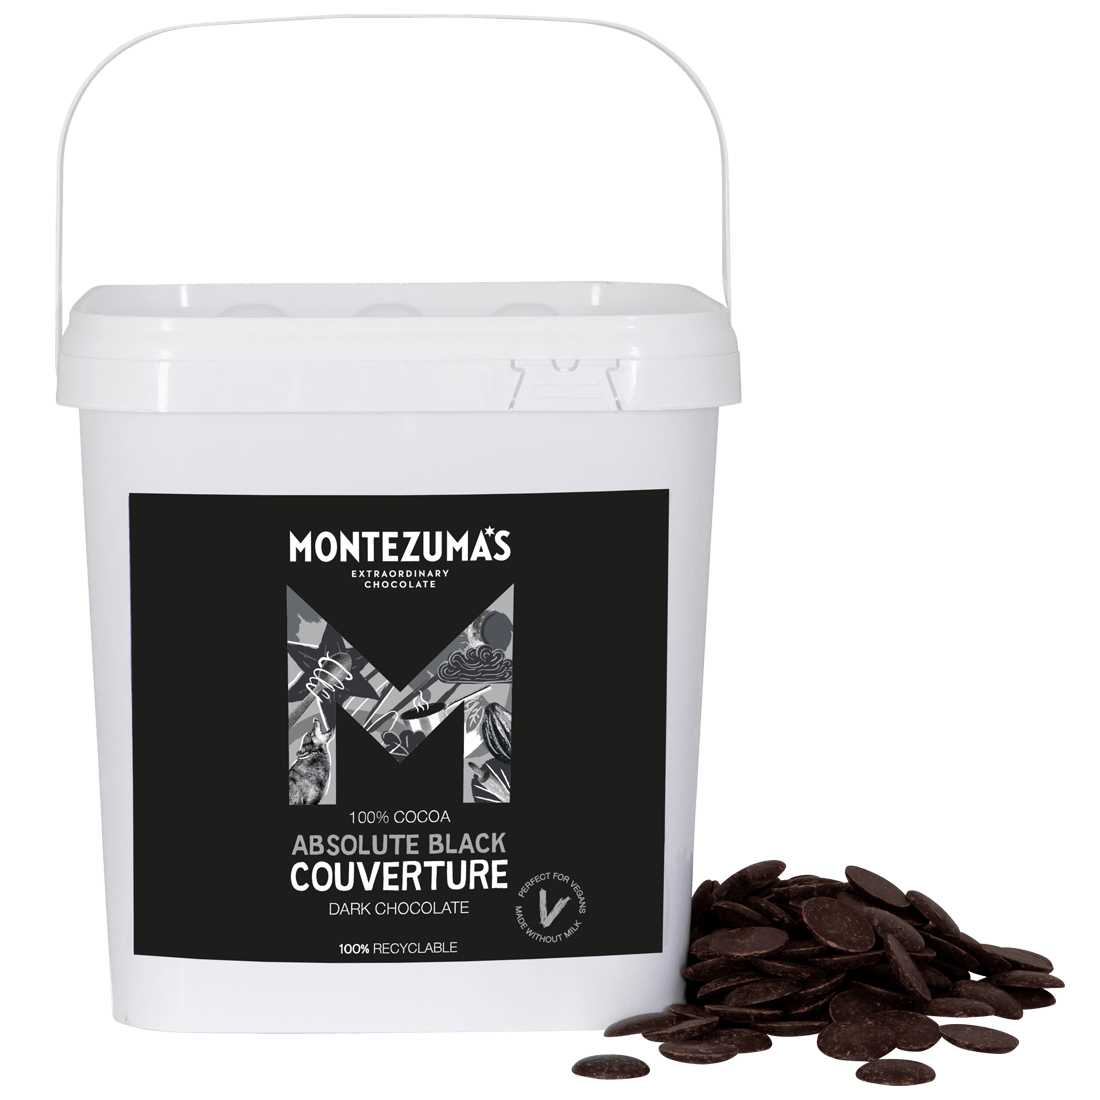 Absolute Black 100% Cocoa Couverture